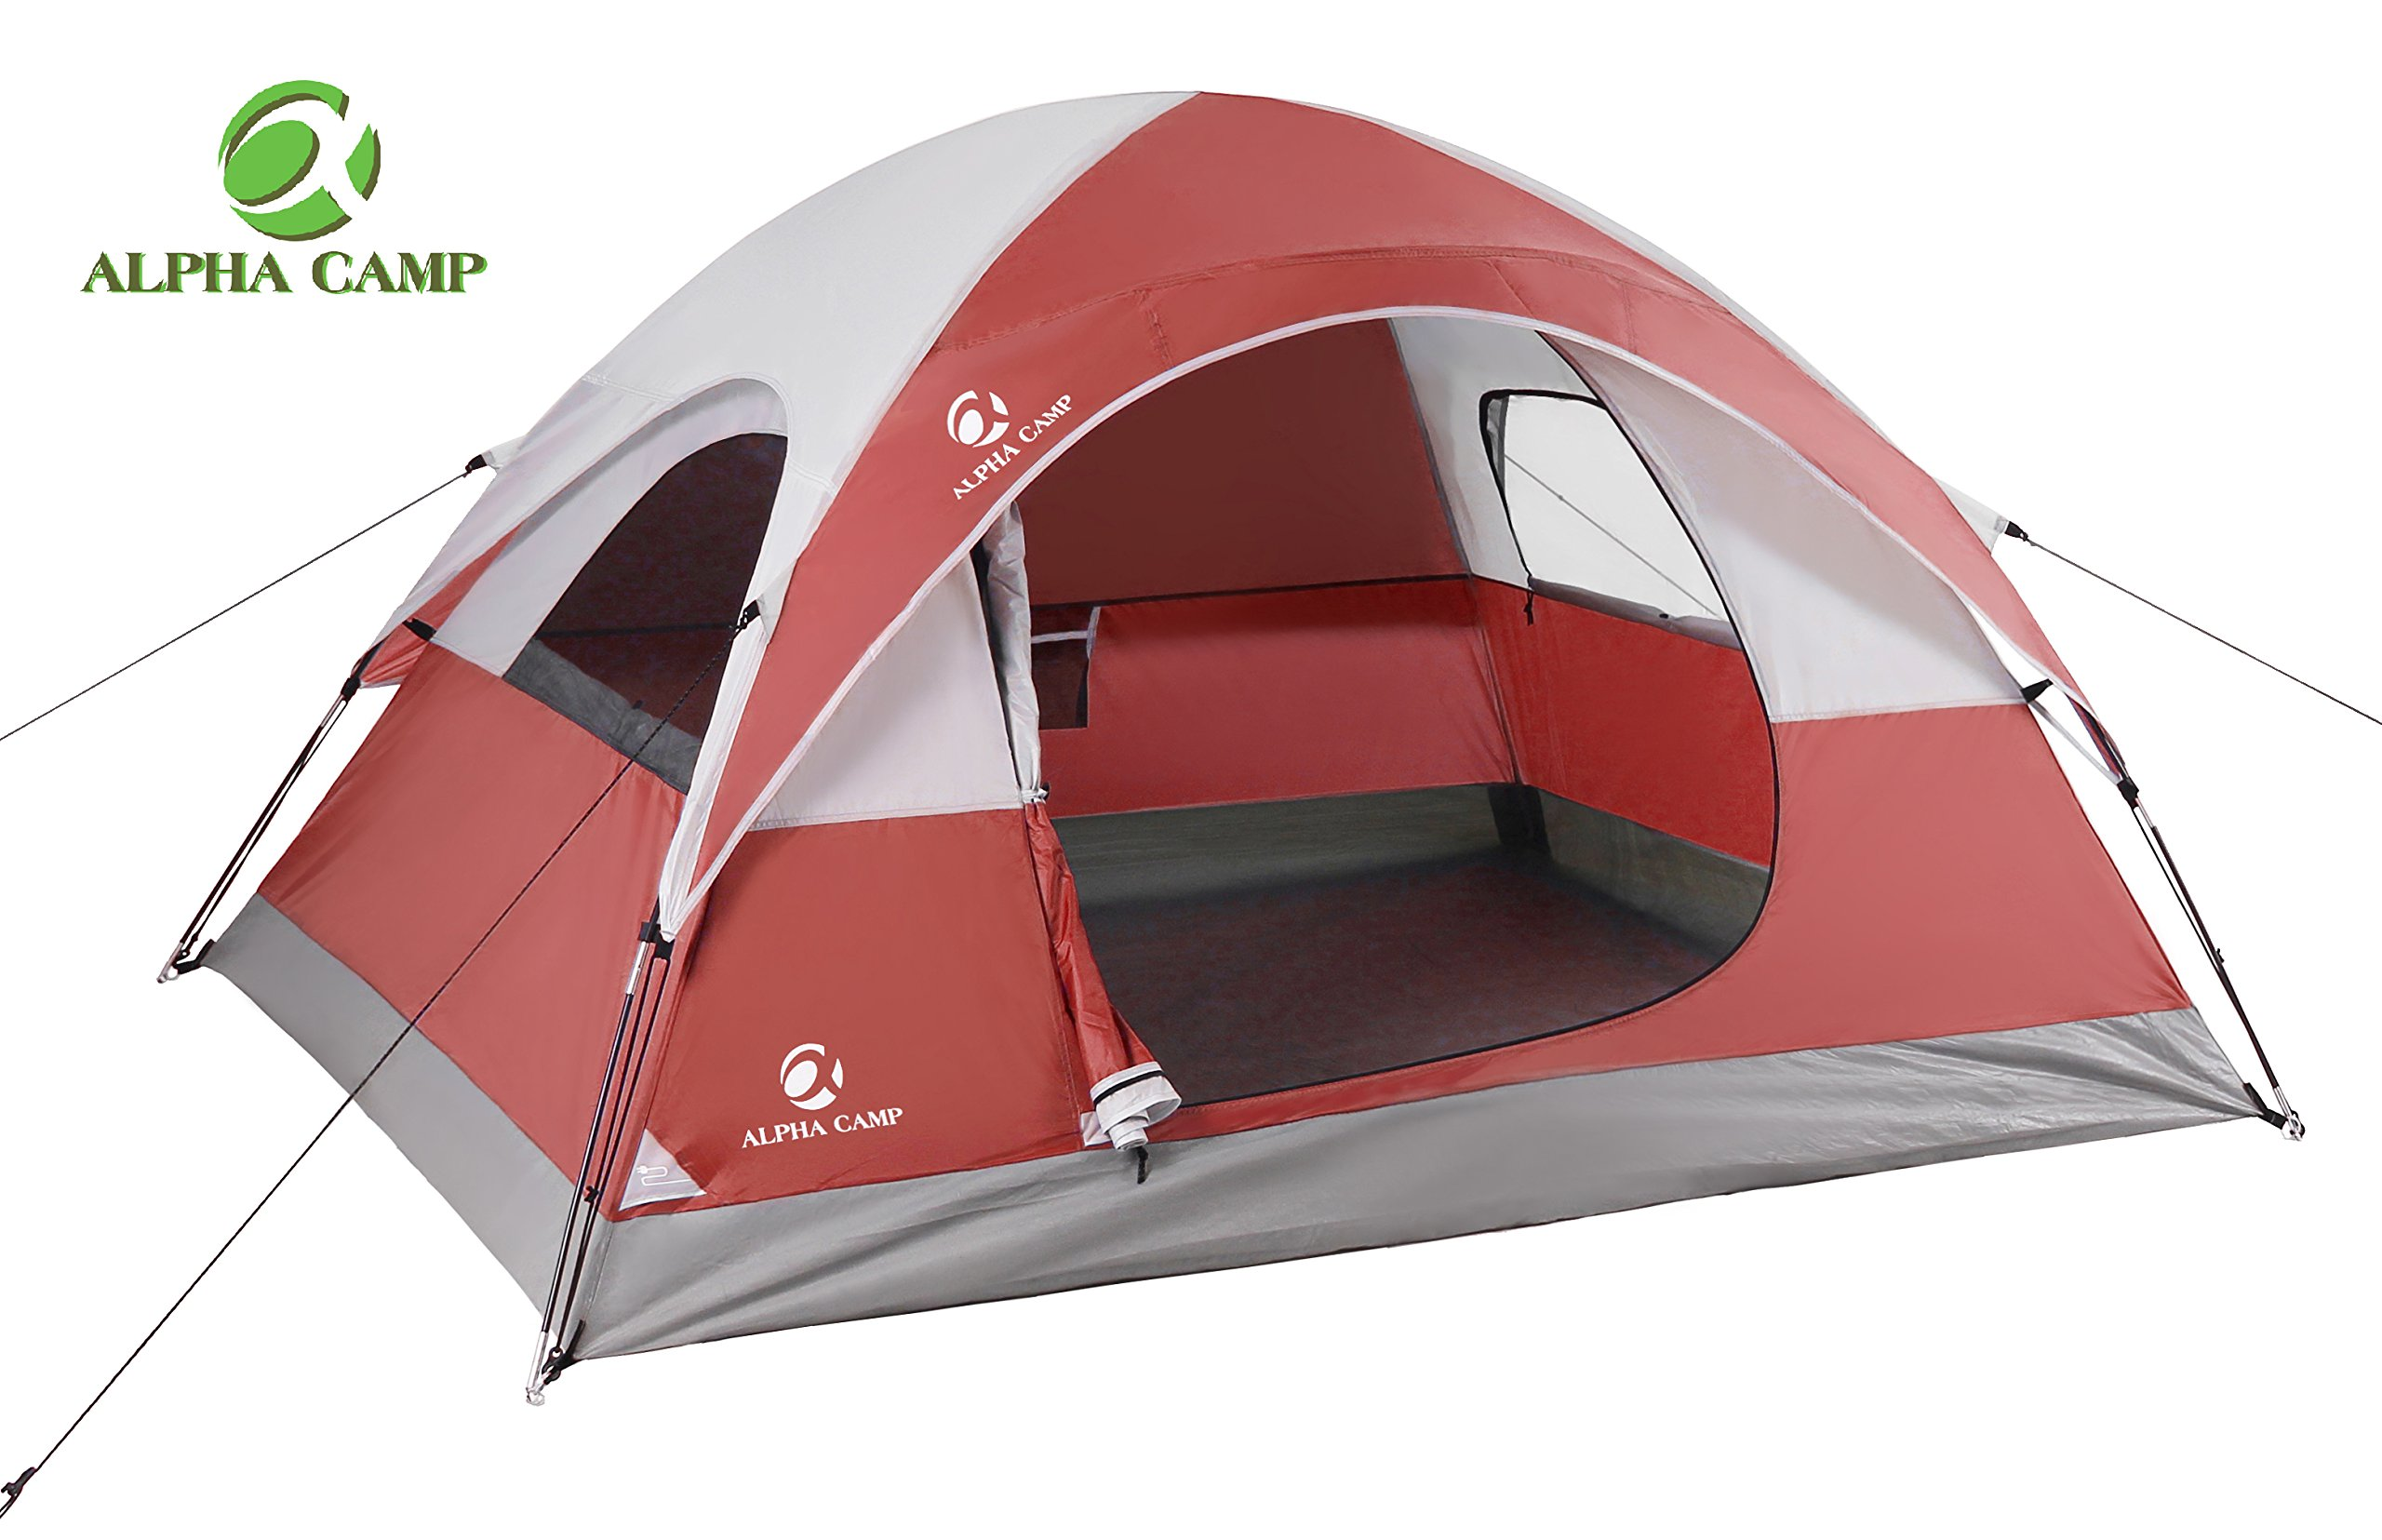 ALPHA CAMP 3 Person Camping Tent - 7' x 8' Red by ALPHA CAMP